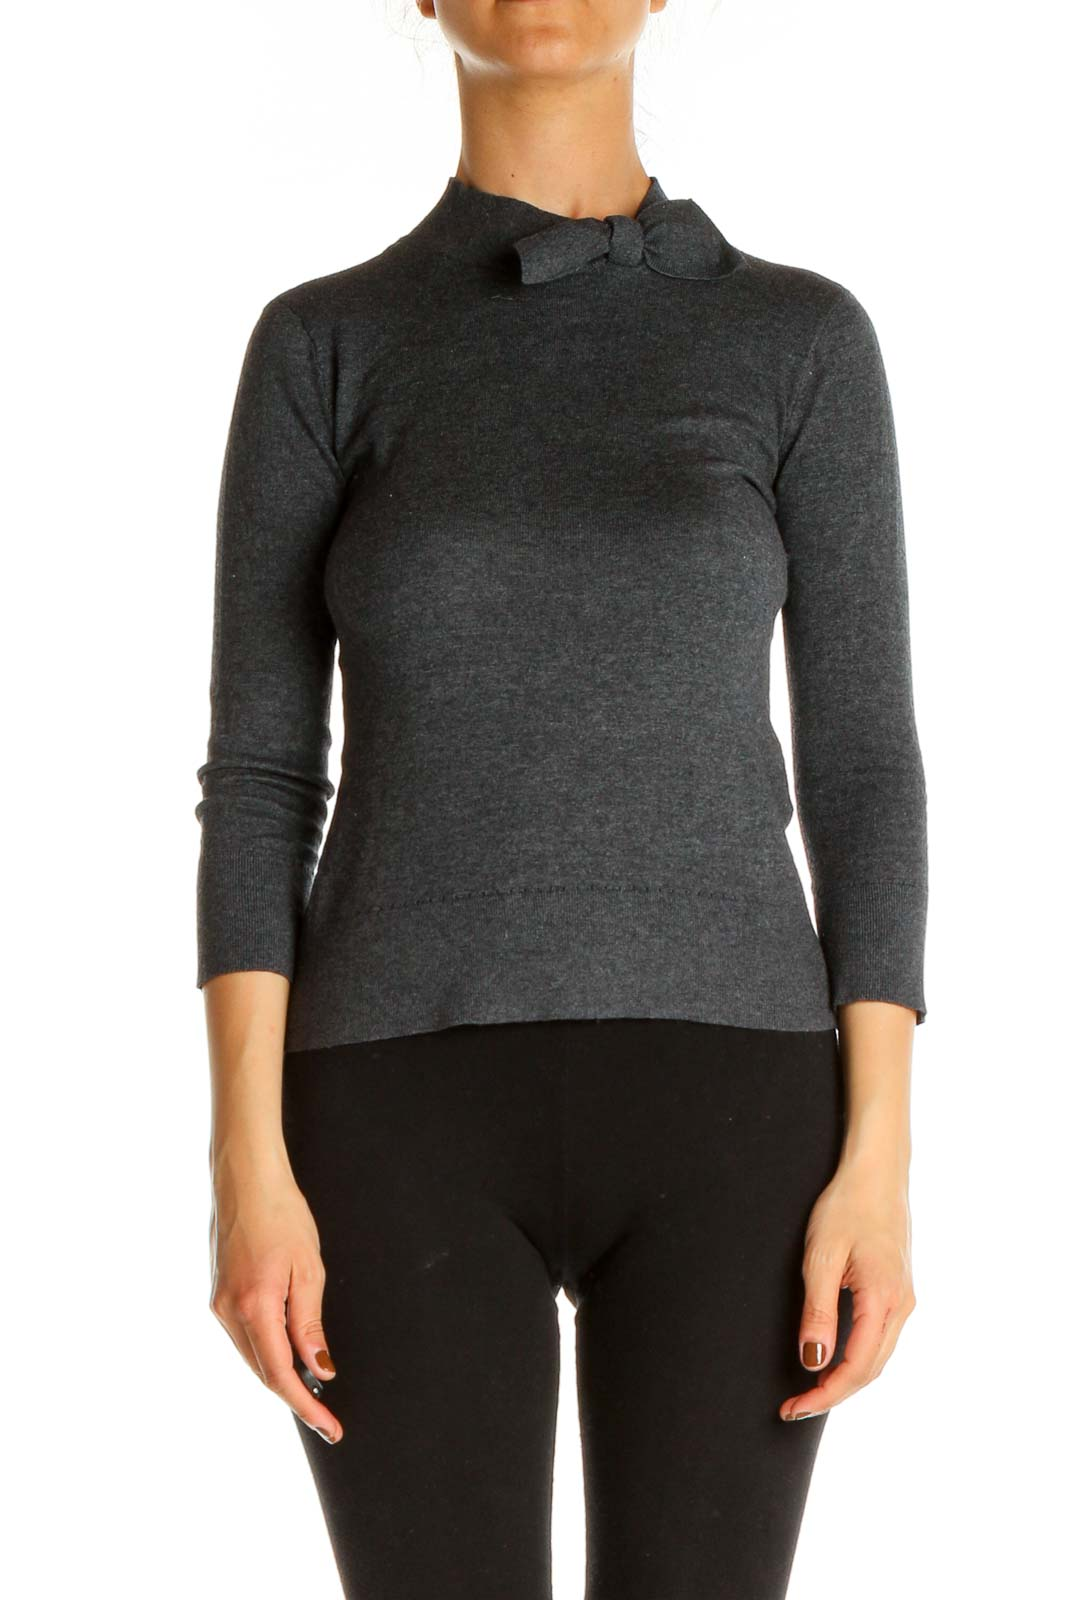 Gray Textured Brunch Sweater Front